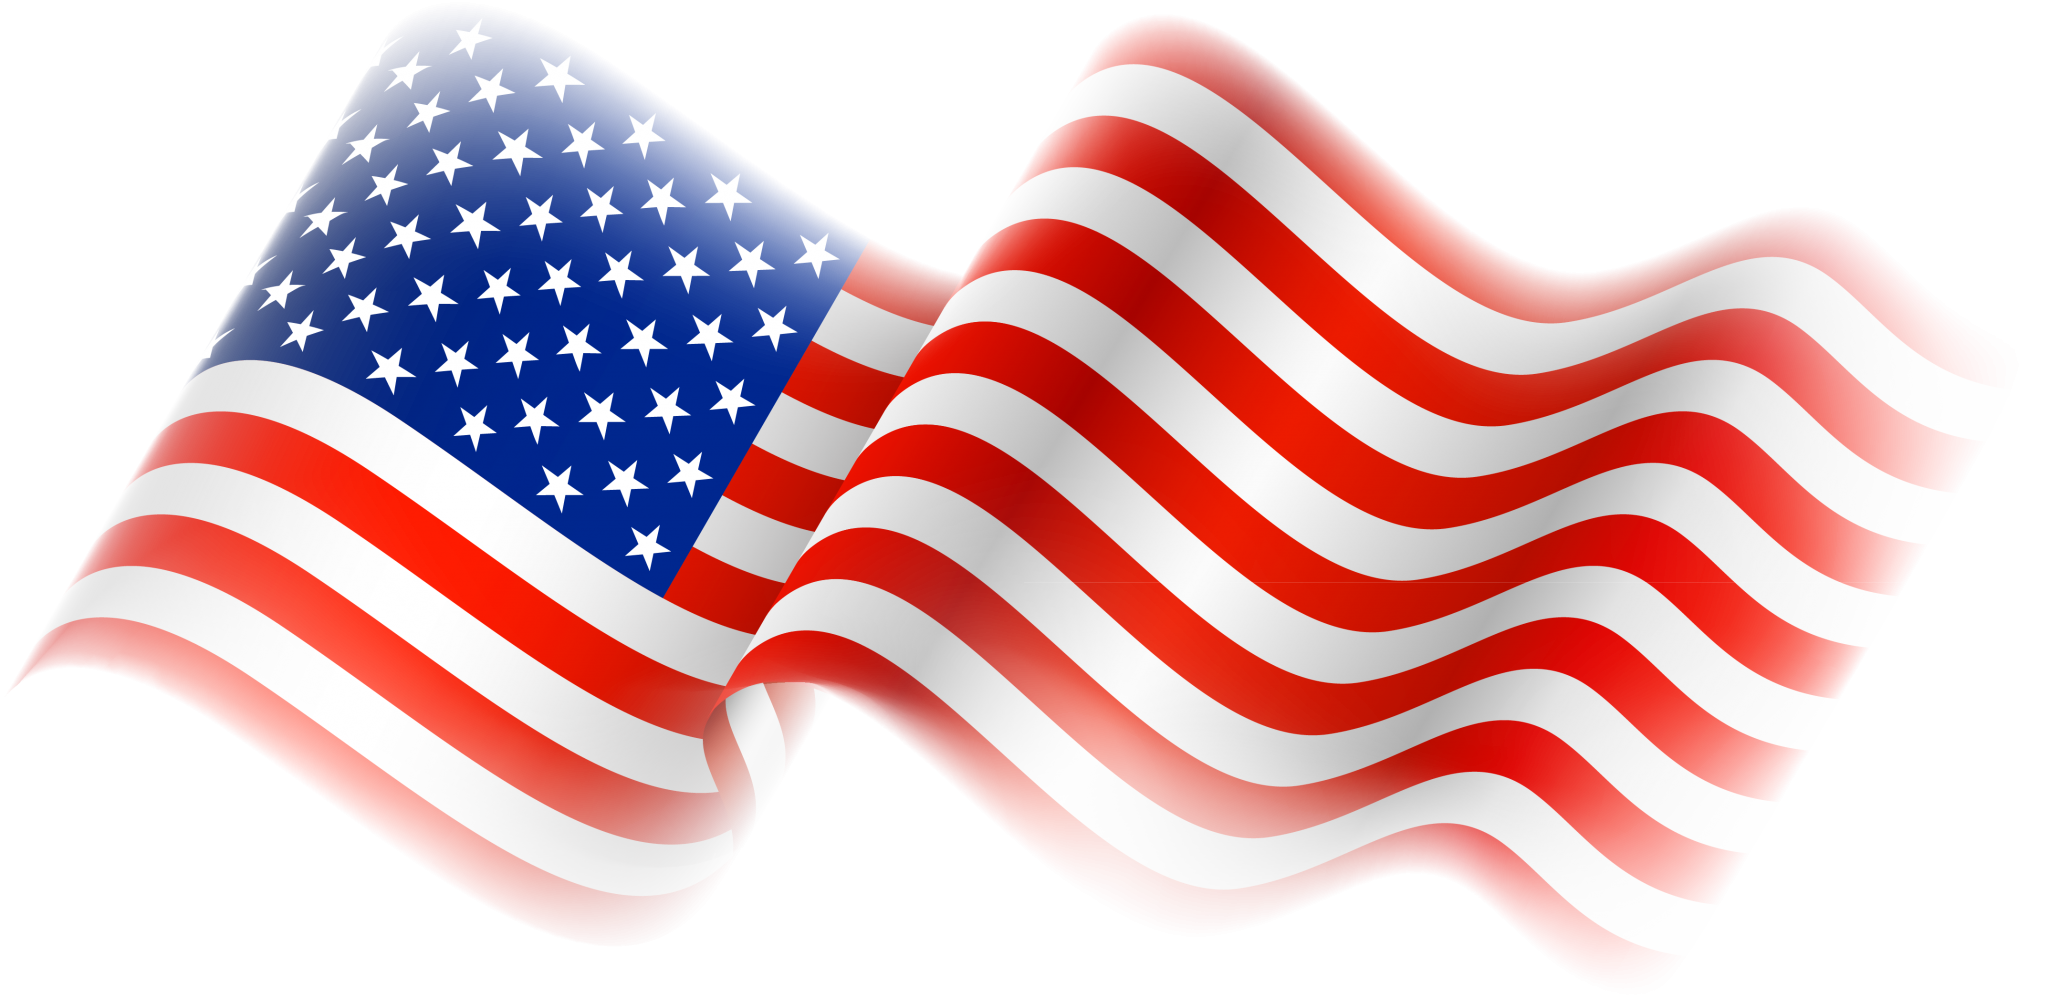 American flag widescreen backgrounds. United states clipart background